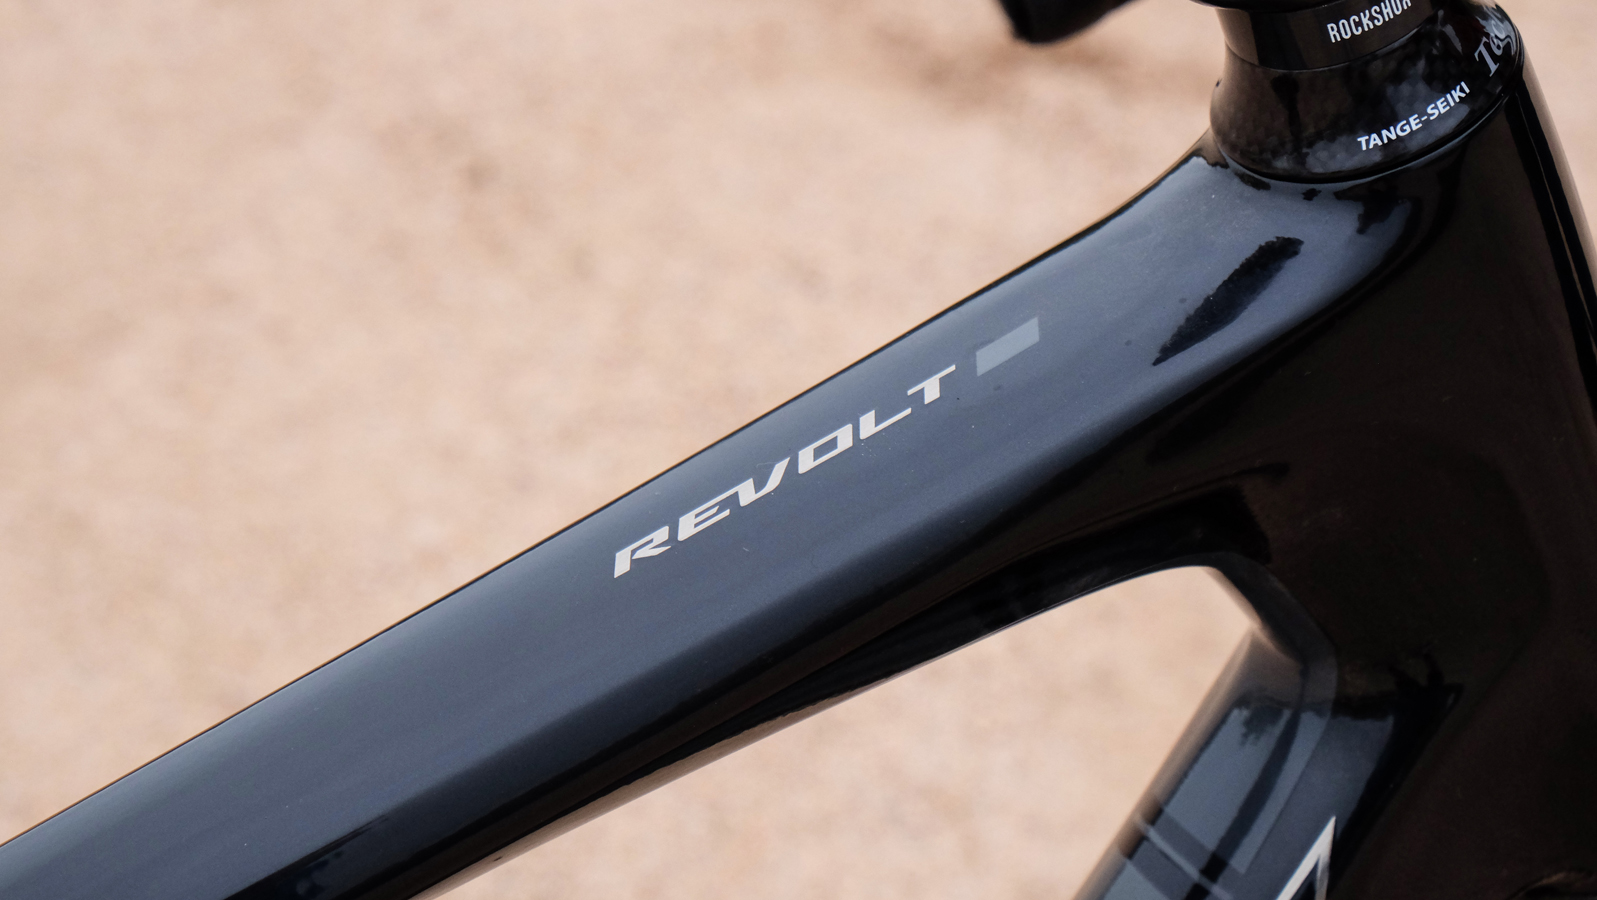 Giant introduced the updated Revolt with a focus on gravel in late 2018 for the 2019 model year.